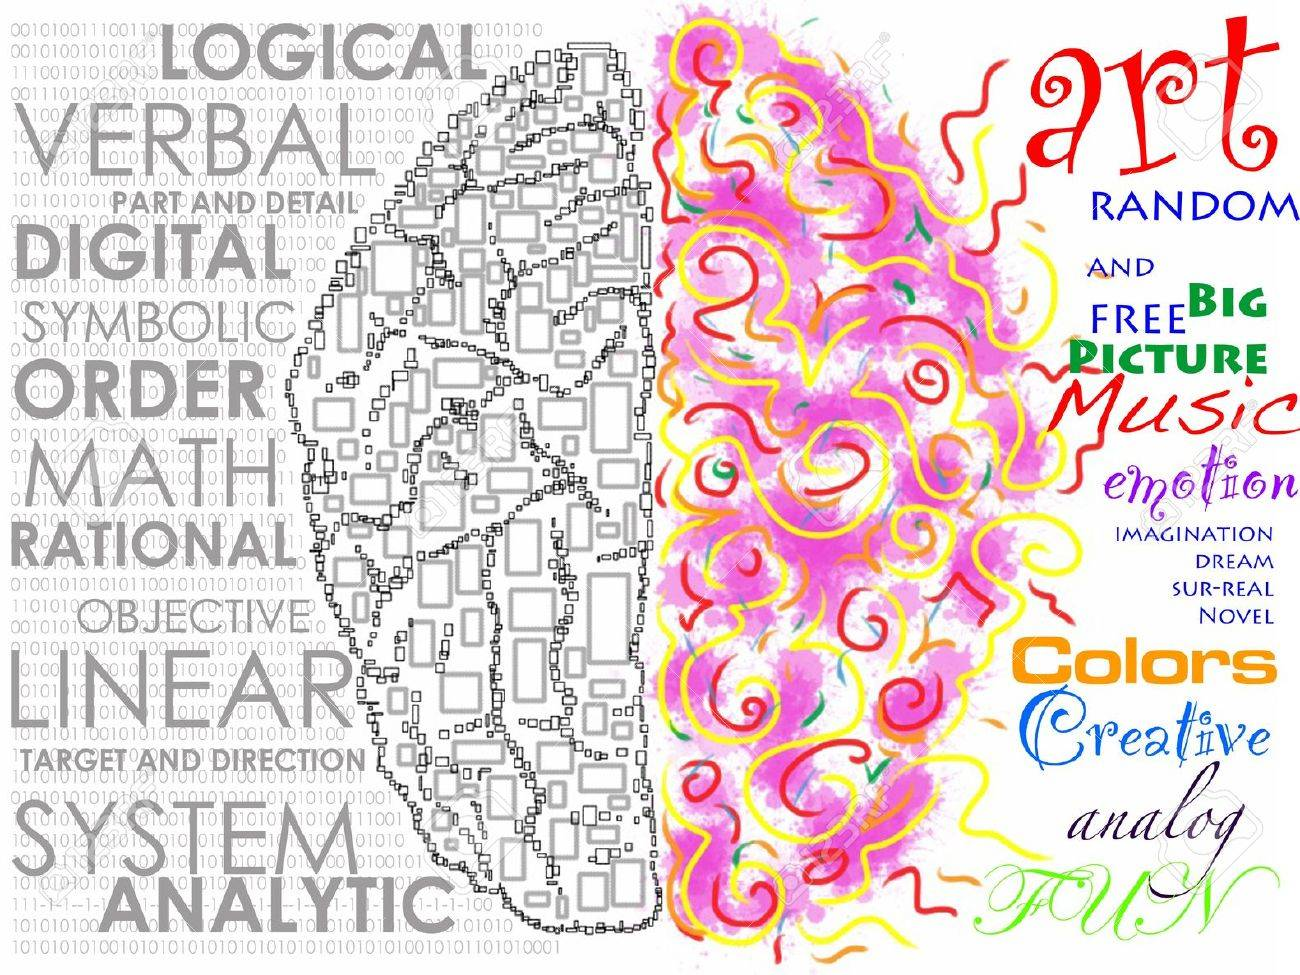 Left And Right Brain Function Illustration Stock Photo, Picture ...